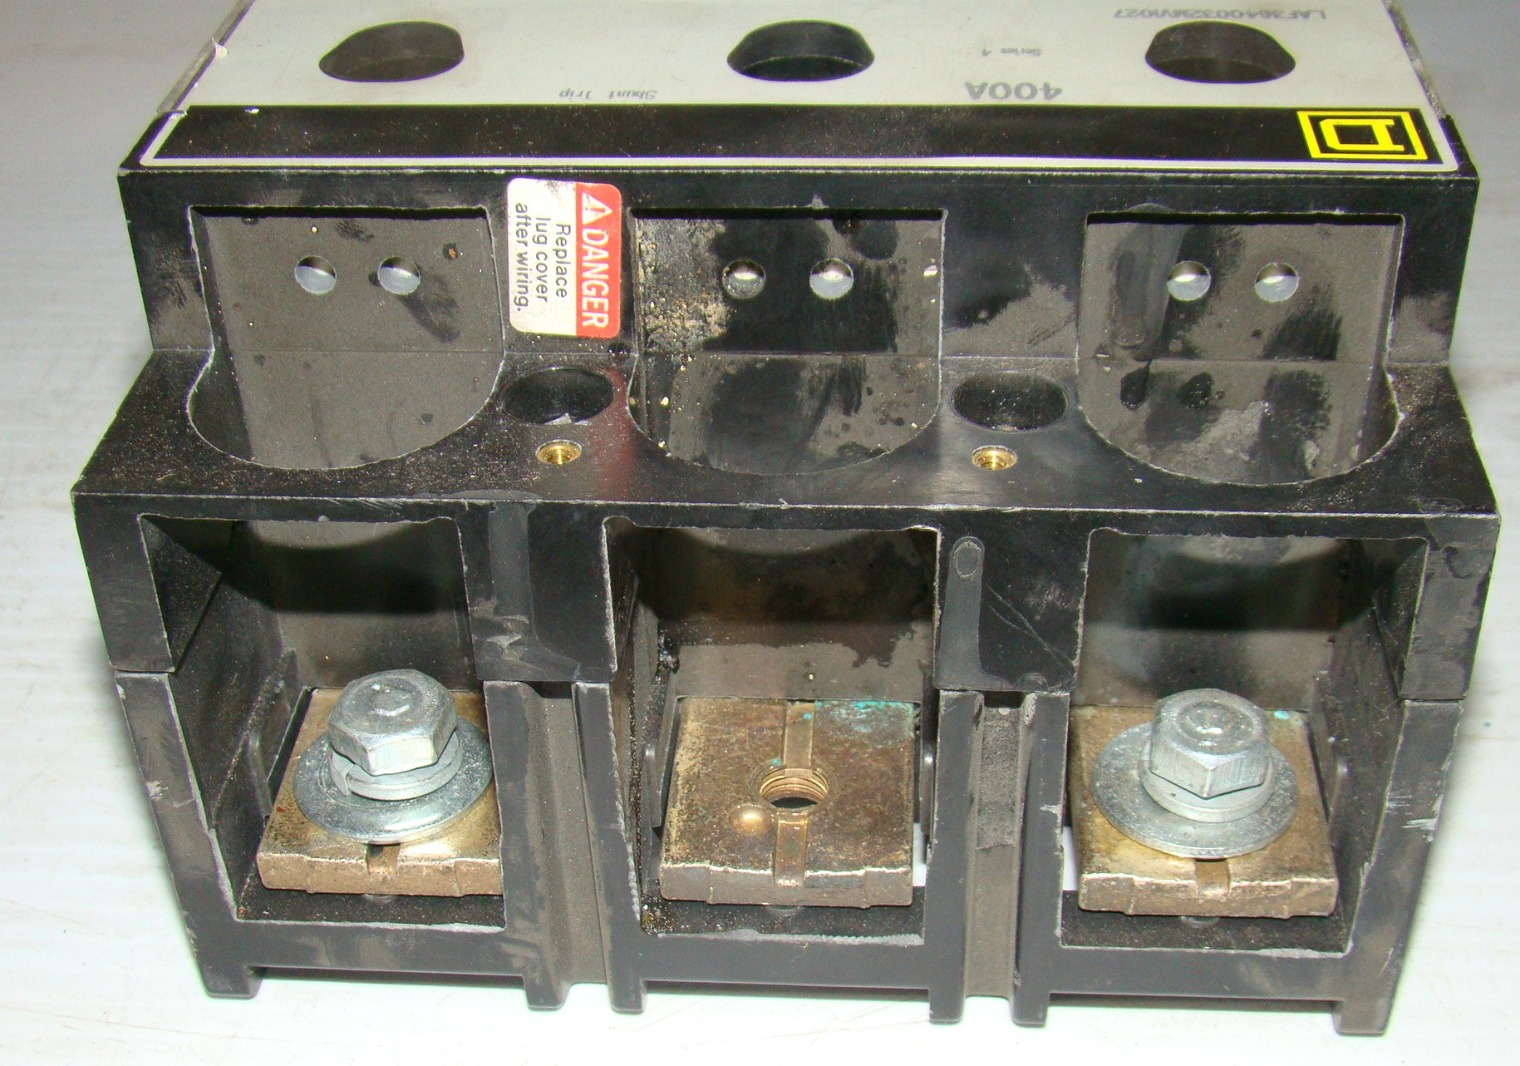 Portable Air Conditioner Trips Circuit Breaker Conditioners Or Off Position And Is Trip Free Ebr Interlocked Receptacle For Electrical Equipment V